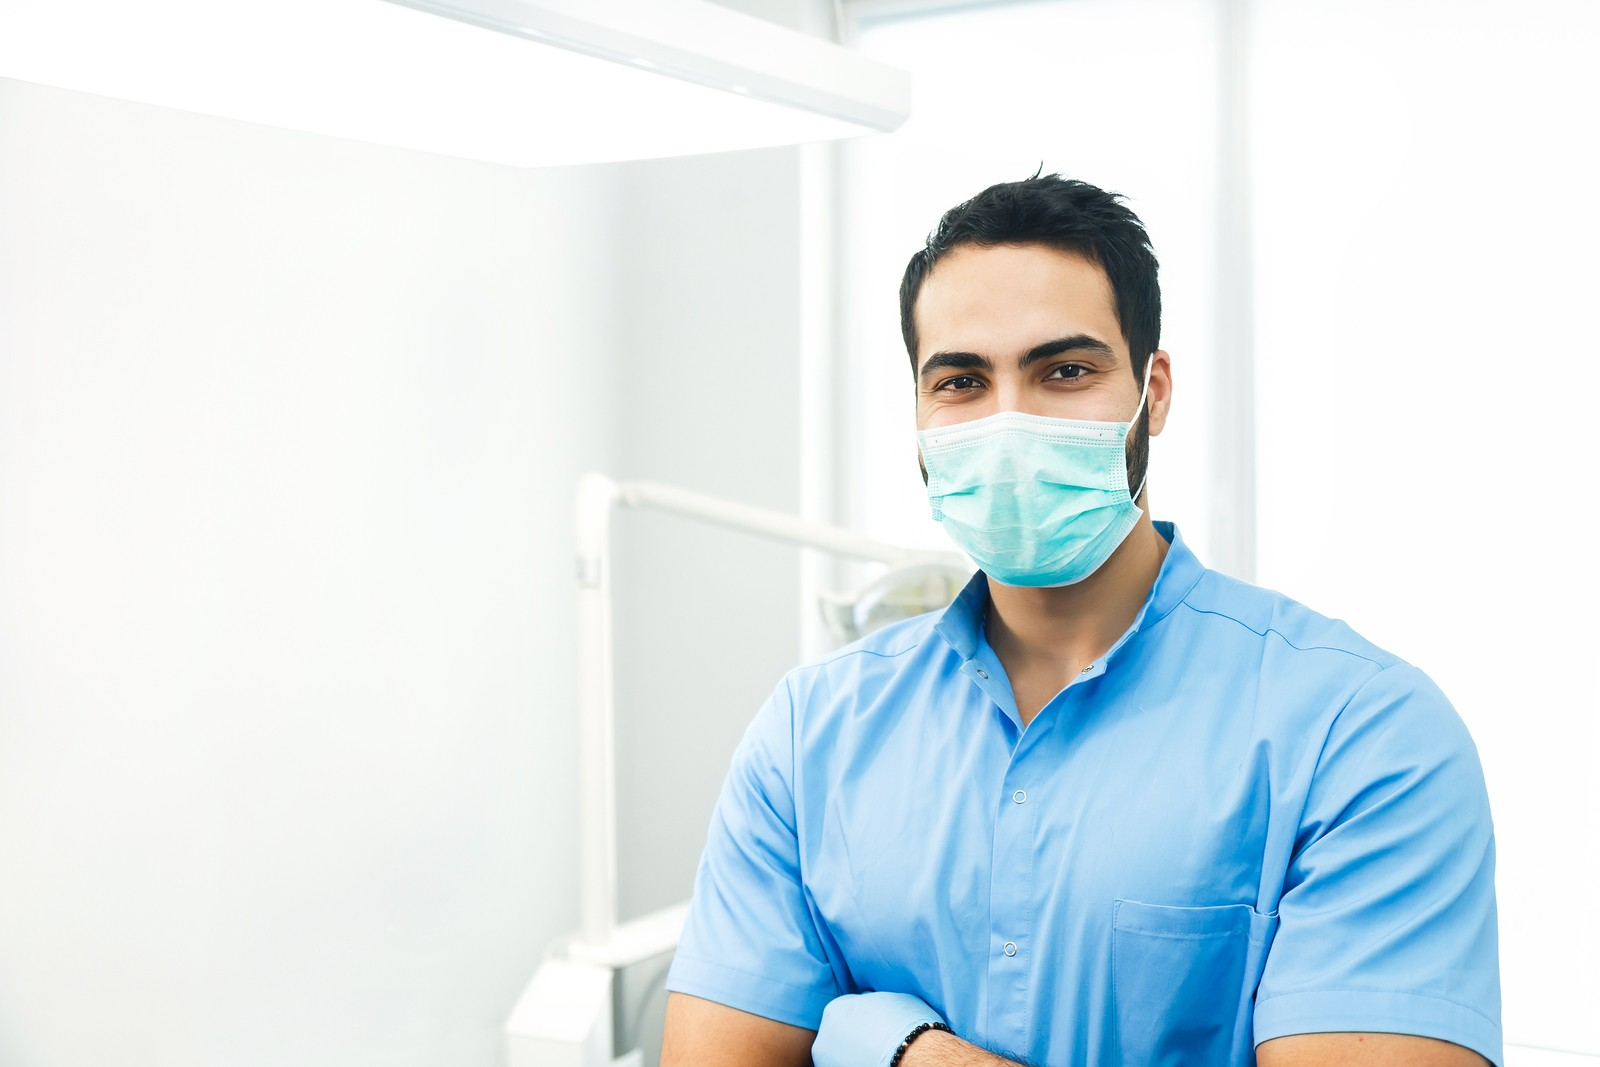 bigstock-Portrait-Of-Hadsome-Dentist-Do-231273907